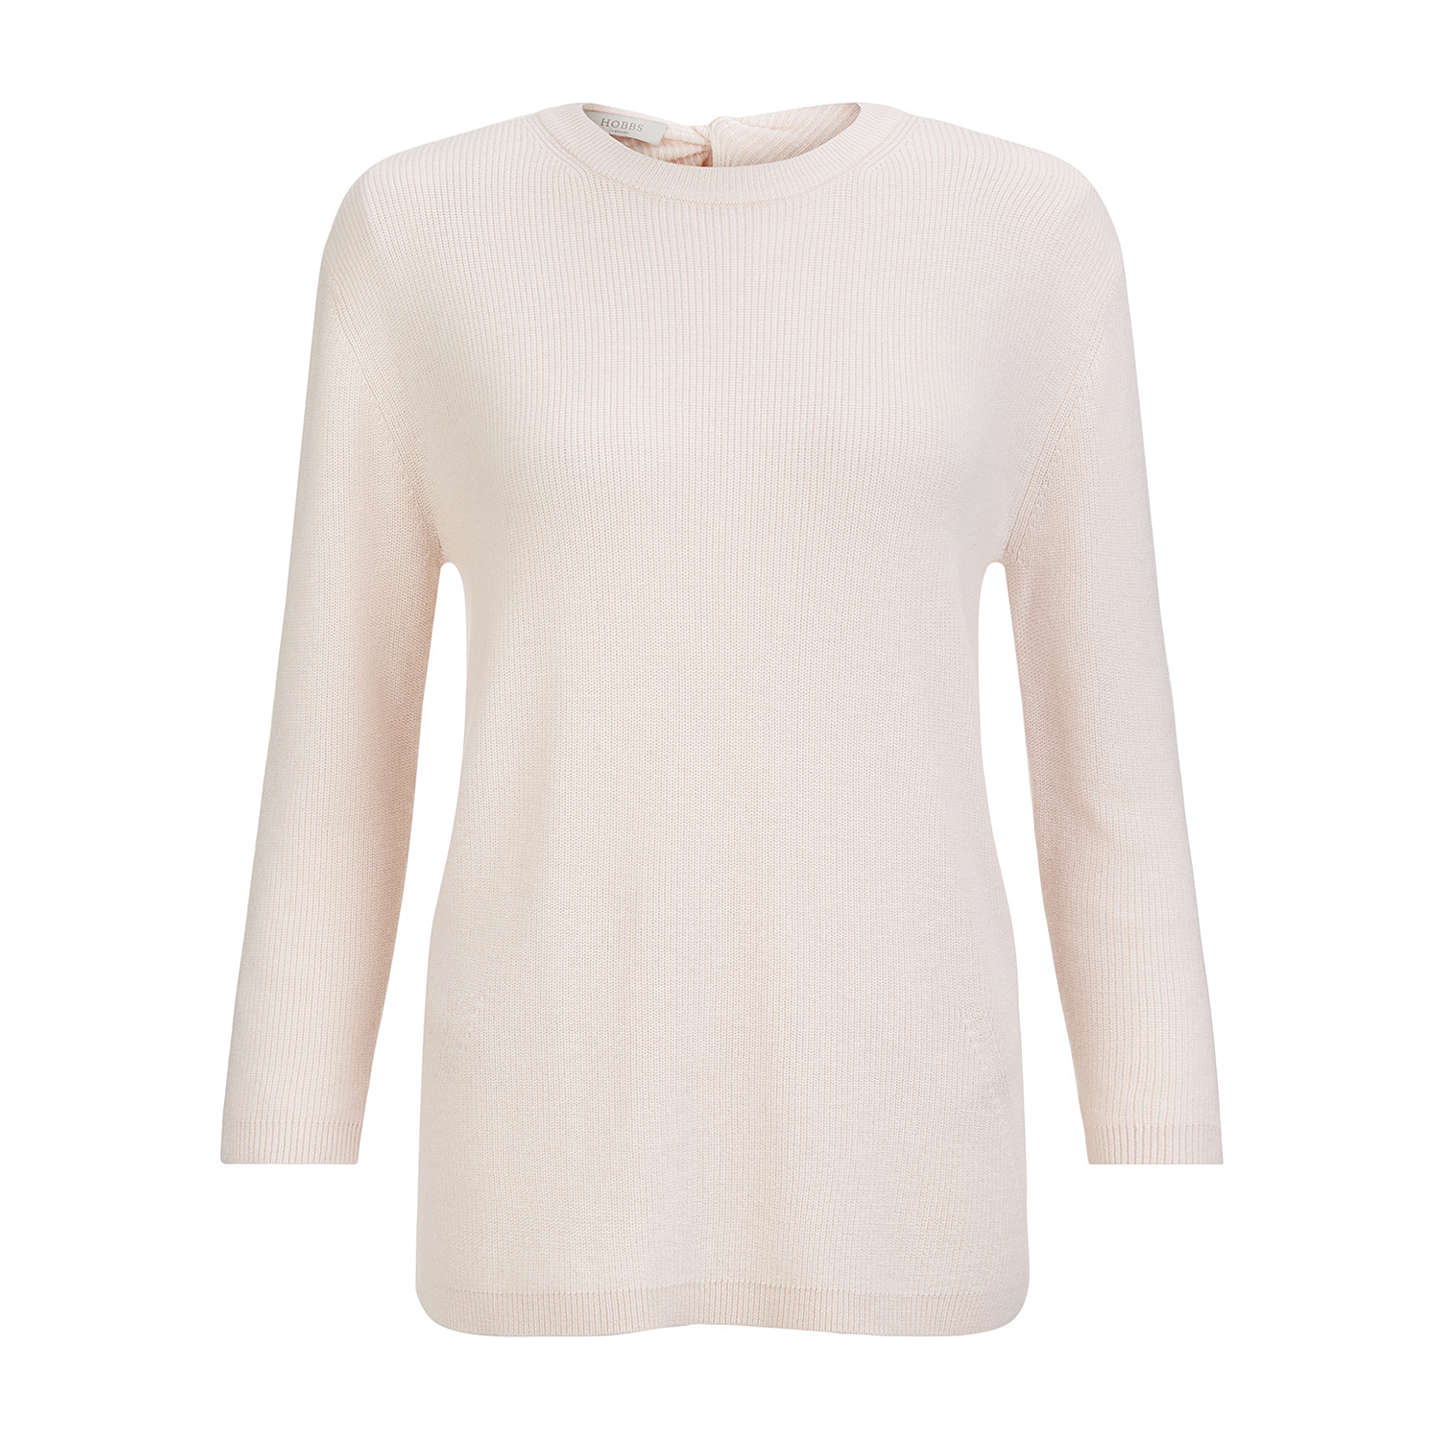 BuyHobbs Lilly Sweater, Pretty Pink, XS Online at johnlewis.com